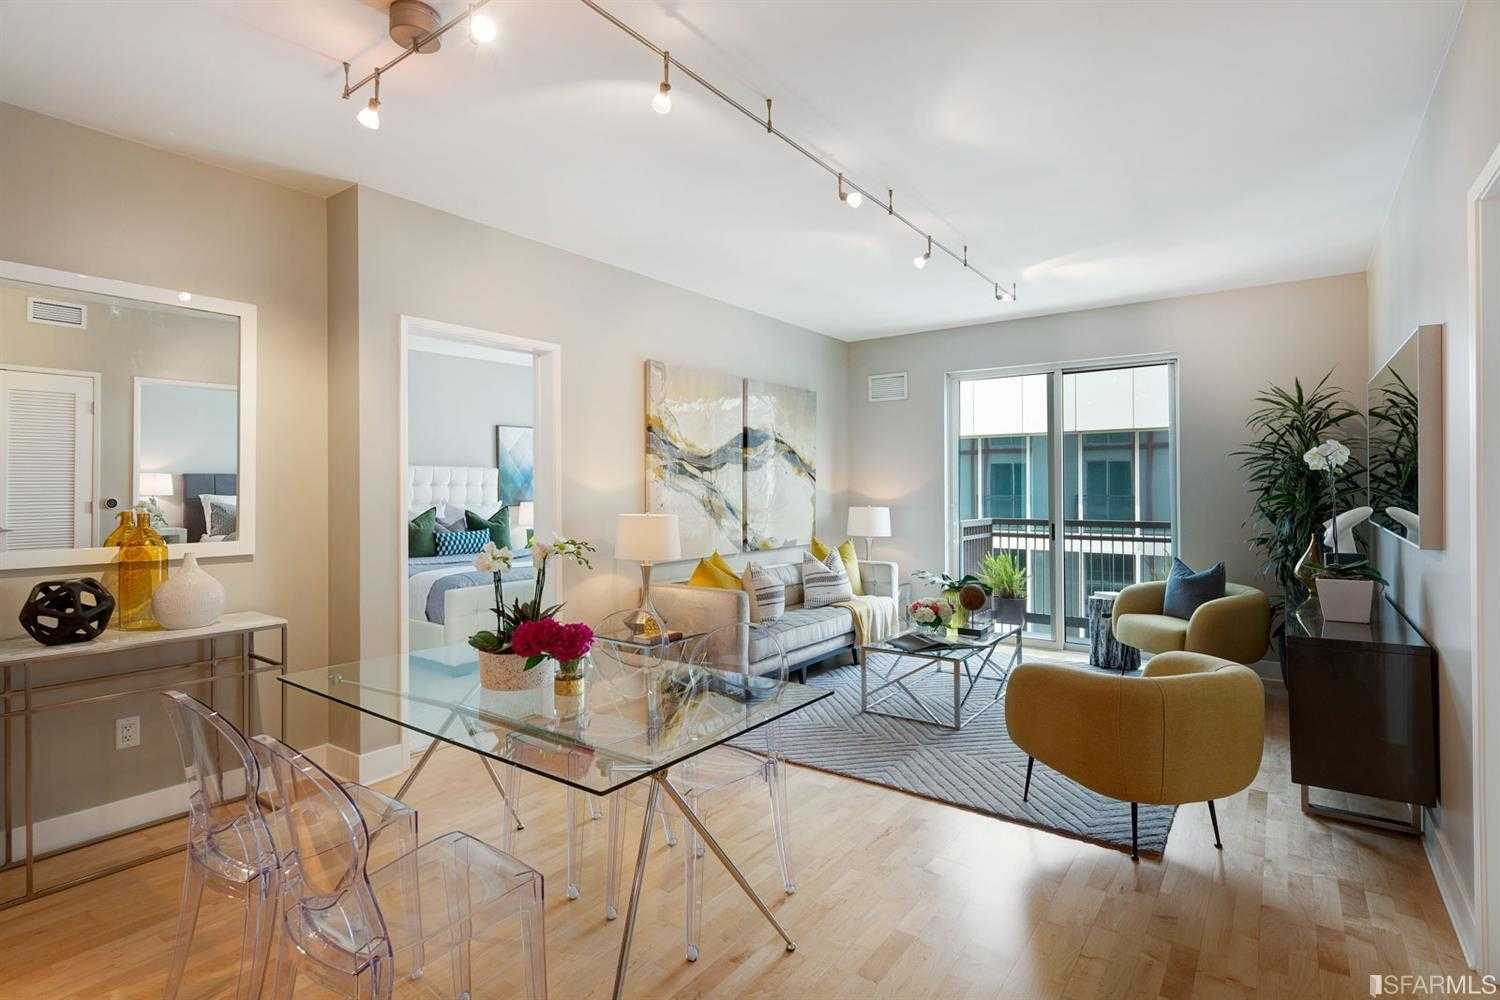 $1,099,000 - 2Br/2Ba -  for Sale in San Francisco